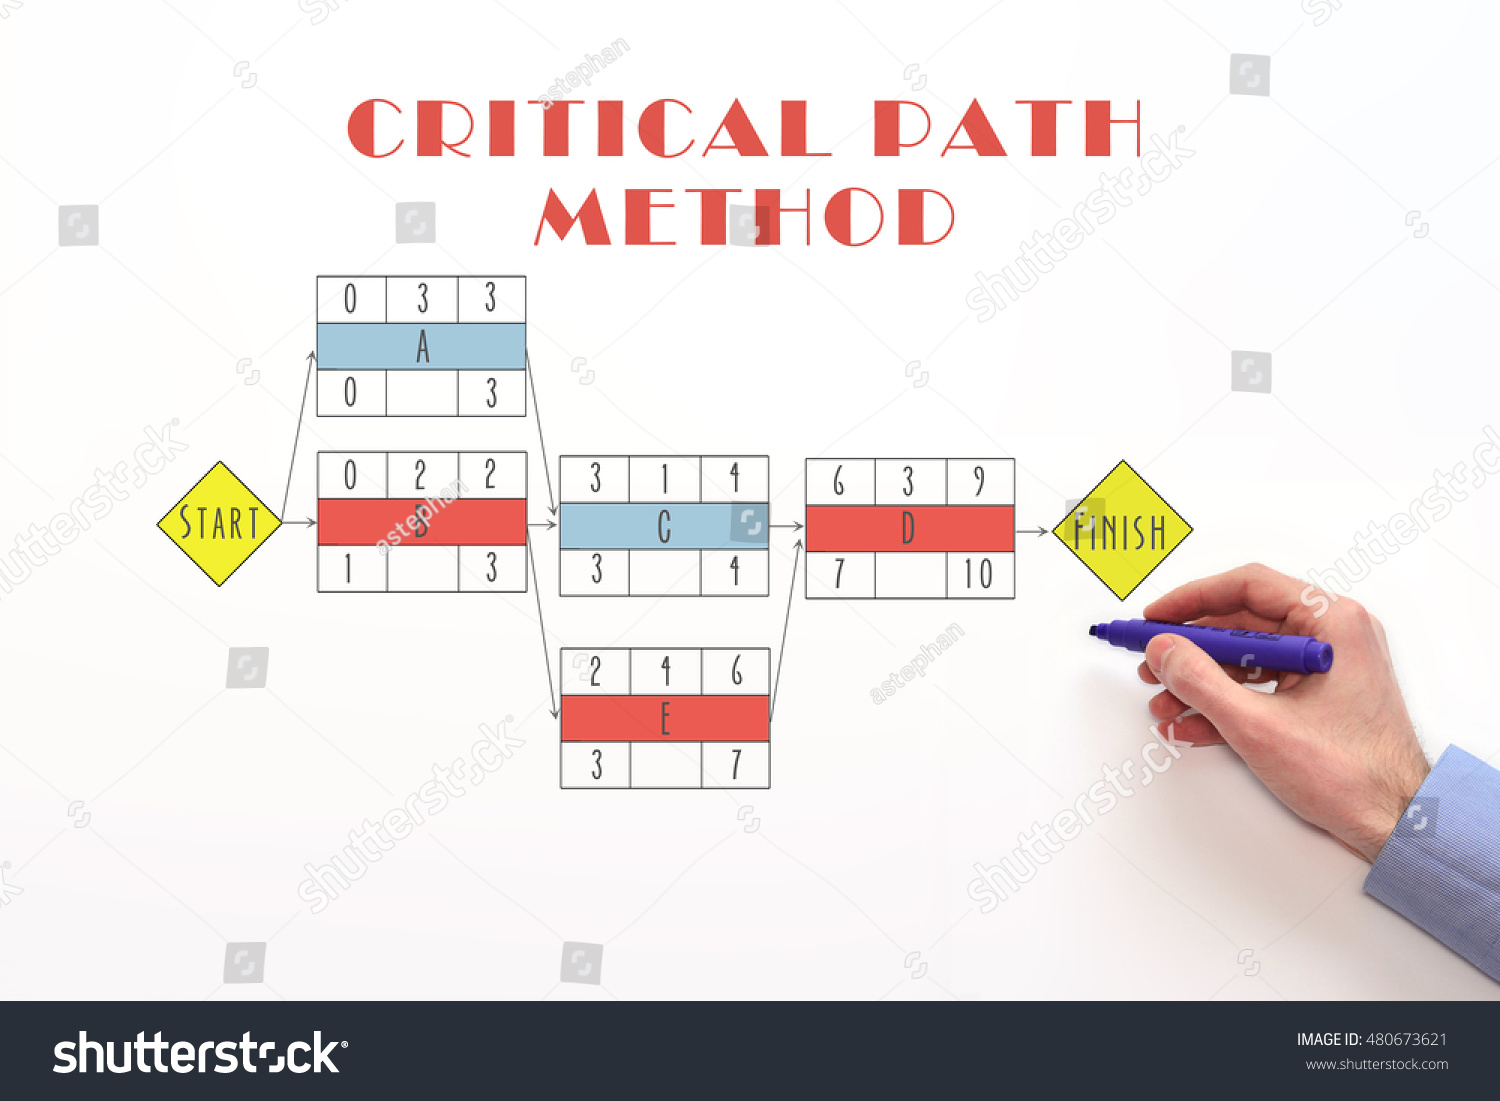 hight resolution of critical path method chart diagram determine critical path critical path concept on white